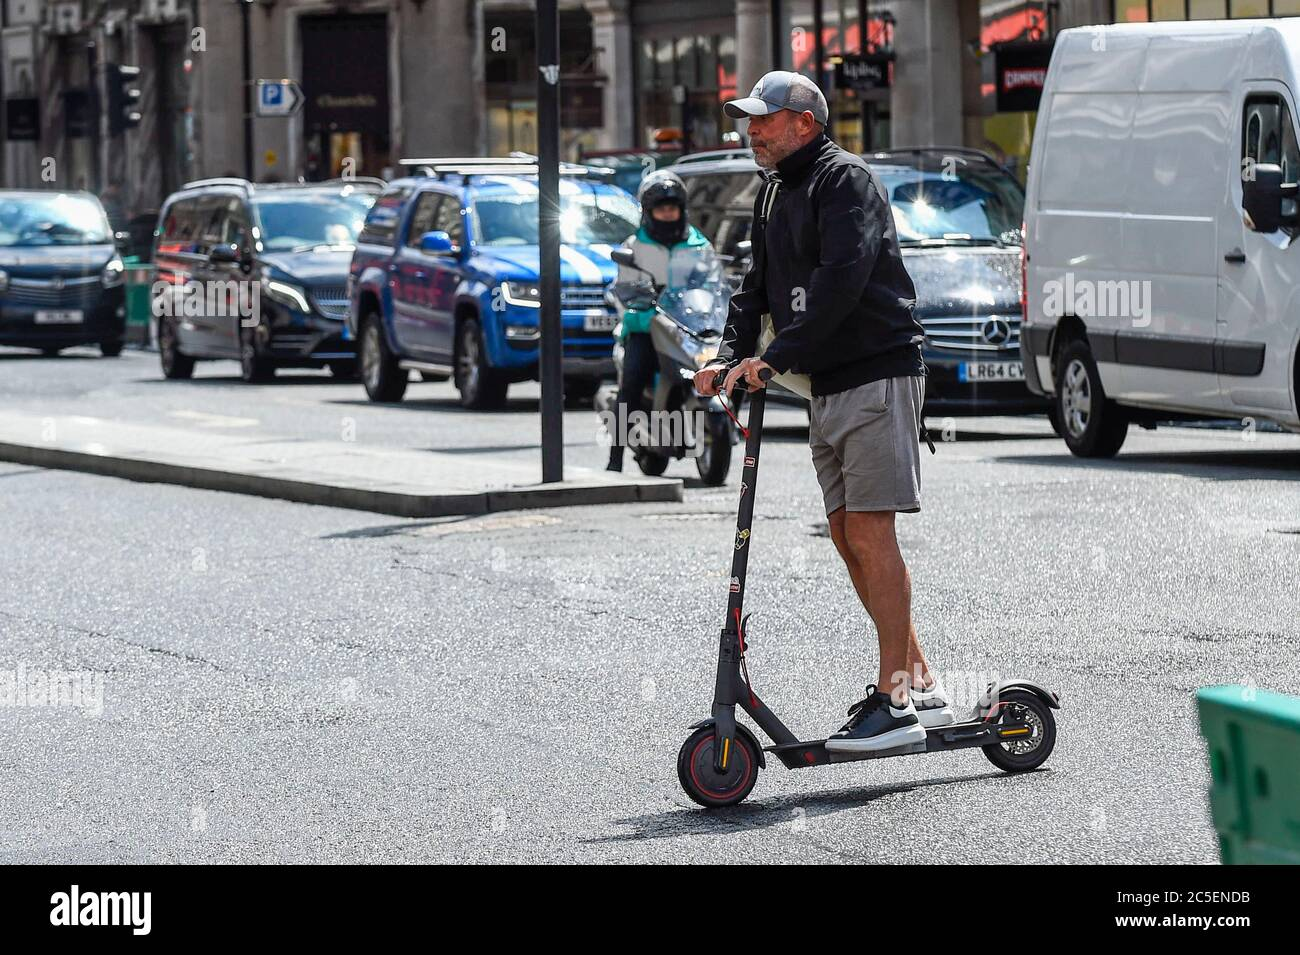 London, UK.  2 July 2020. A man rides a personal electric scooter (e-scooter) in Regent Street.  The Department of Transport will allow rental e-scooters to become legal on roads in Great Britain from 4 July, for a 12 month trial period, to try to ease pressure on public transport during the coronavirus pandemic.  Riders need a full or provisional car, motorcycle or moped licence to use the vehicles, and they must be aged 16 or over.   Currently, it is an offence to ride personal e-scooters on a UK public road, cycle lane or pavement. Credit: Stephen Chung / Alamy Live News Stock Photo